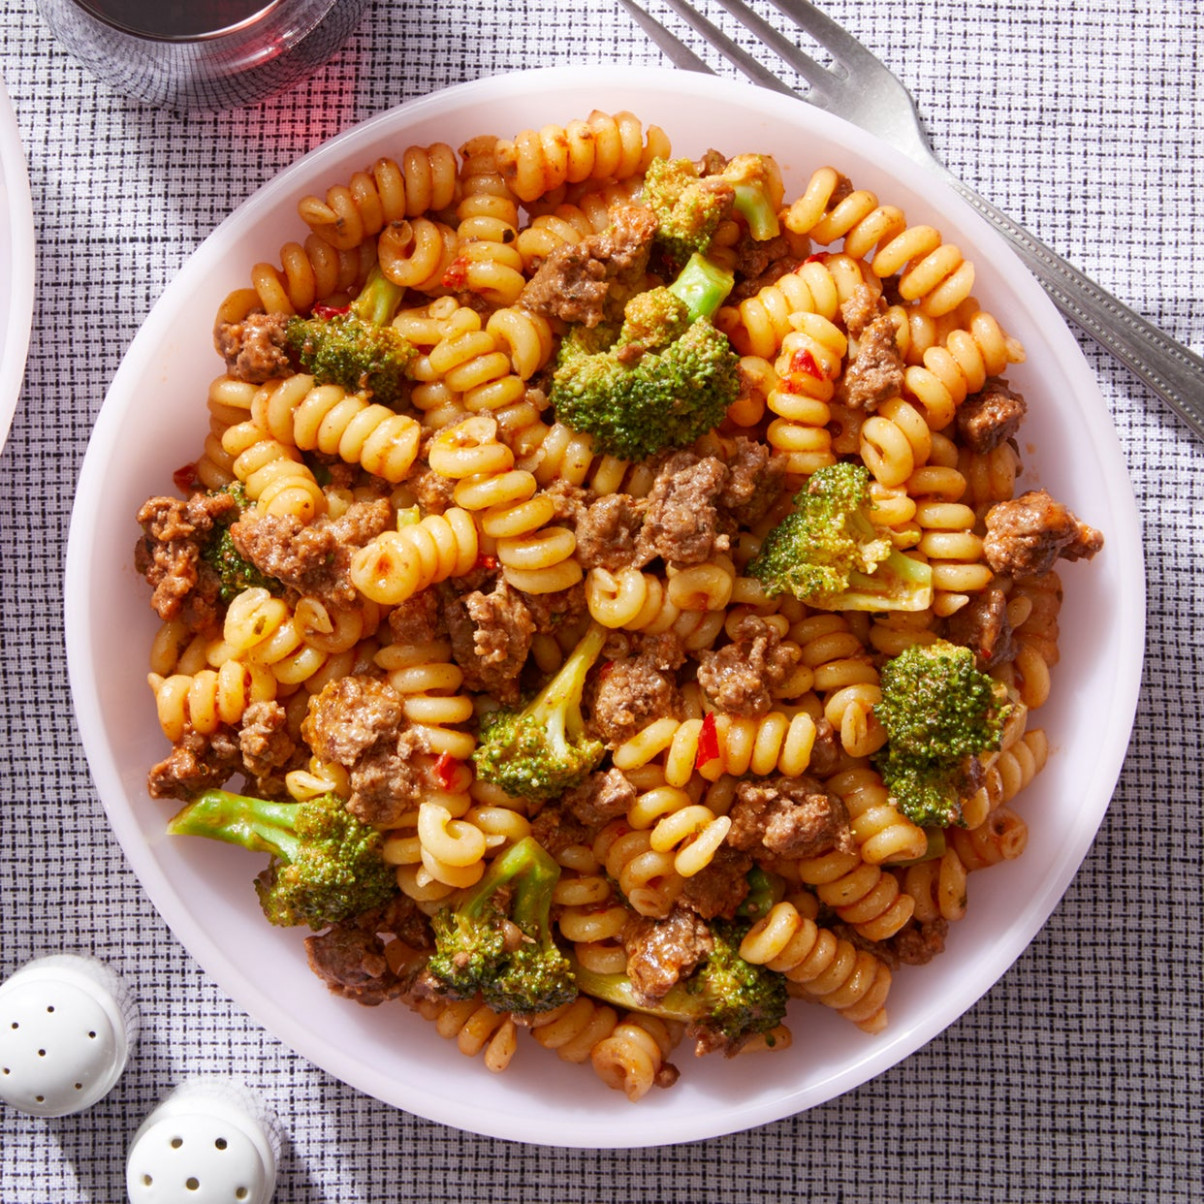 Pasta & Beef Ragù with Broccoli